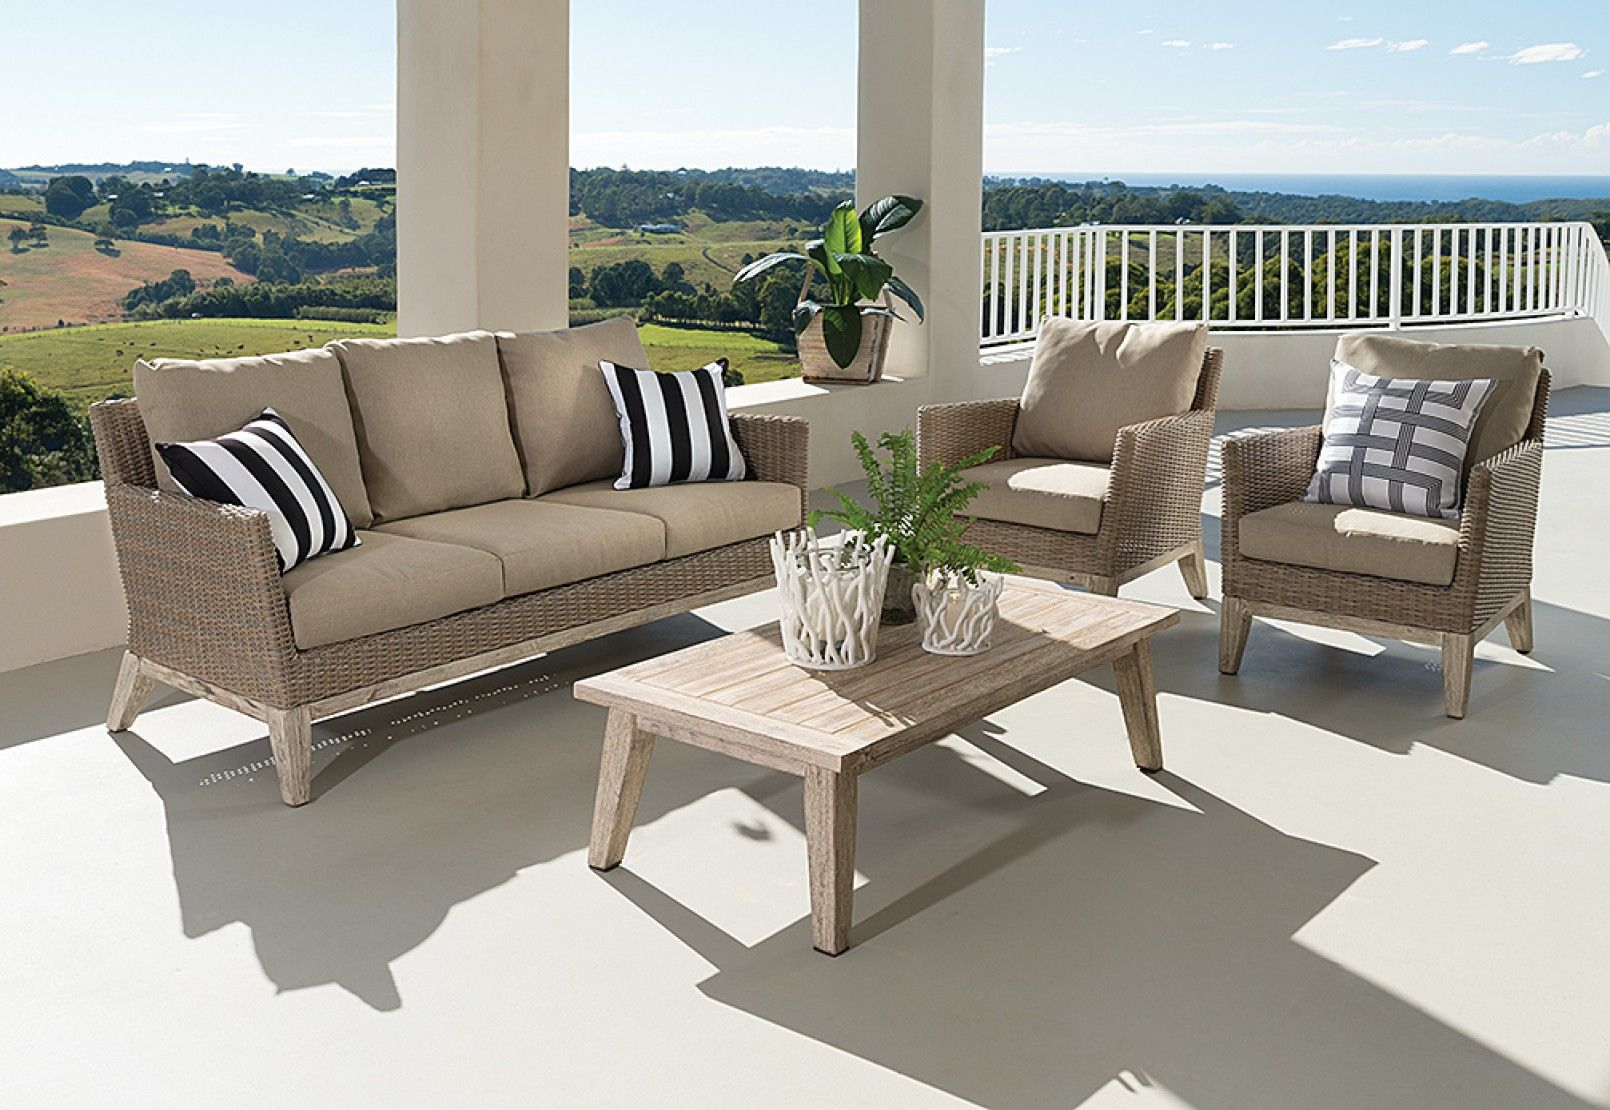 Gryphon 4 Piece Outdoor Lounge Setting | Super A-Mart ...